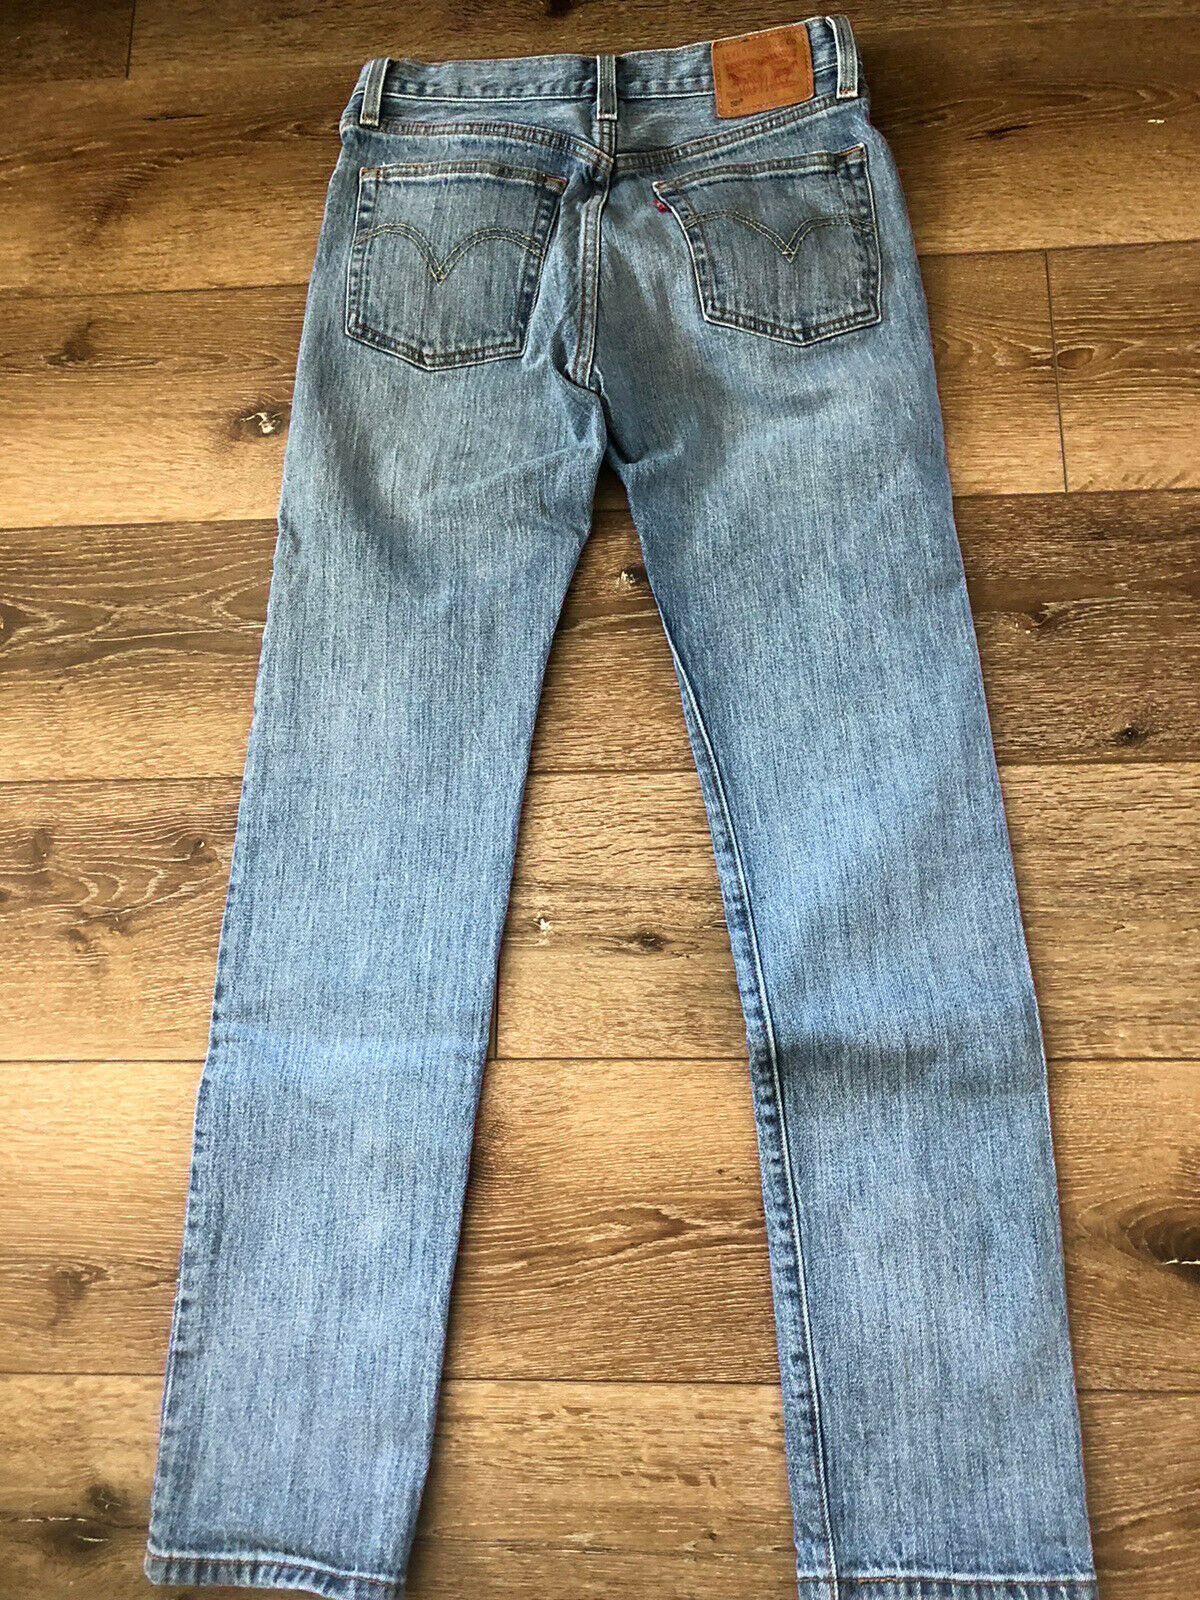 levis 501 made in usa W25L32 - image 3